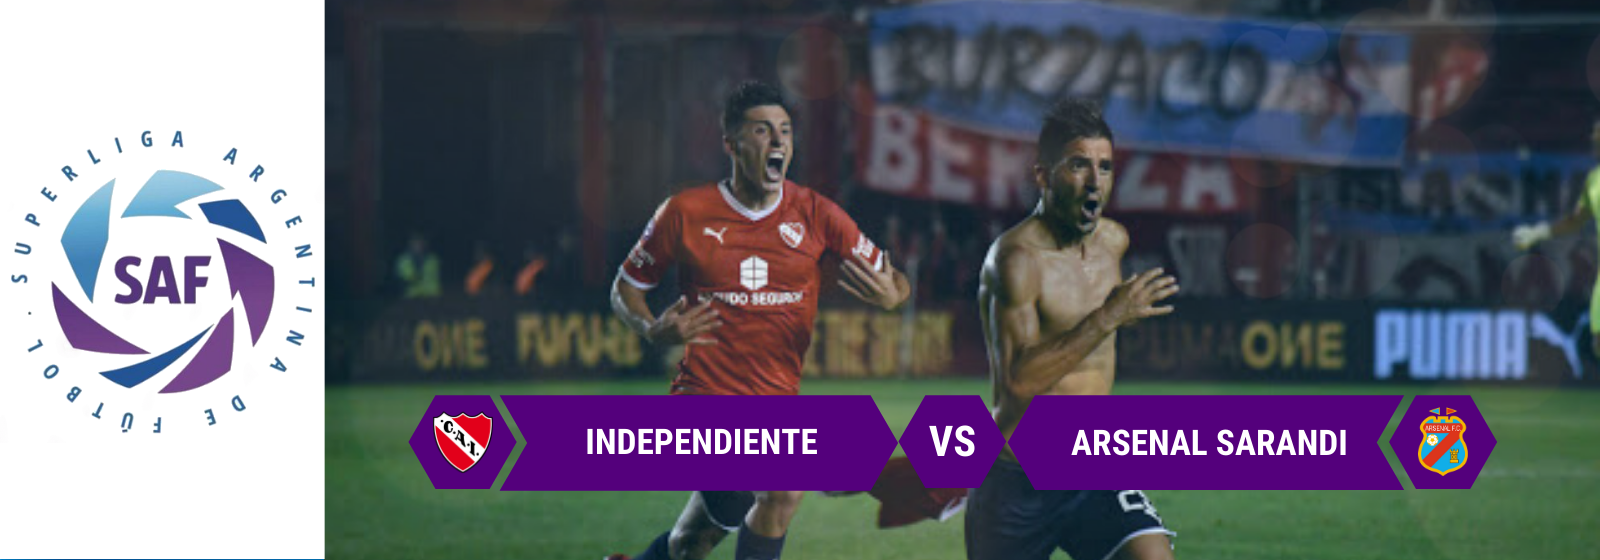 Asianconnect: Independiente vs Arsenal Odds for February 17, 2020